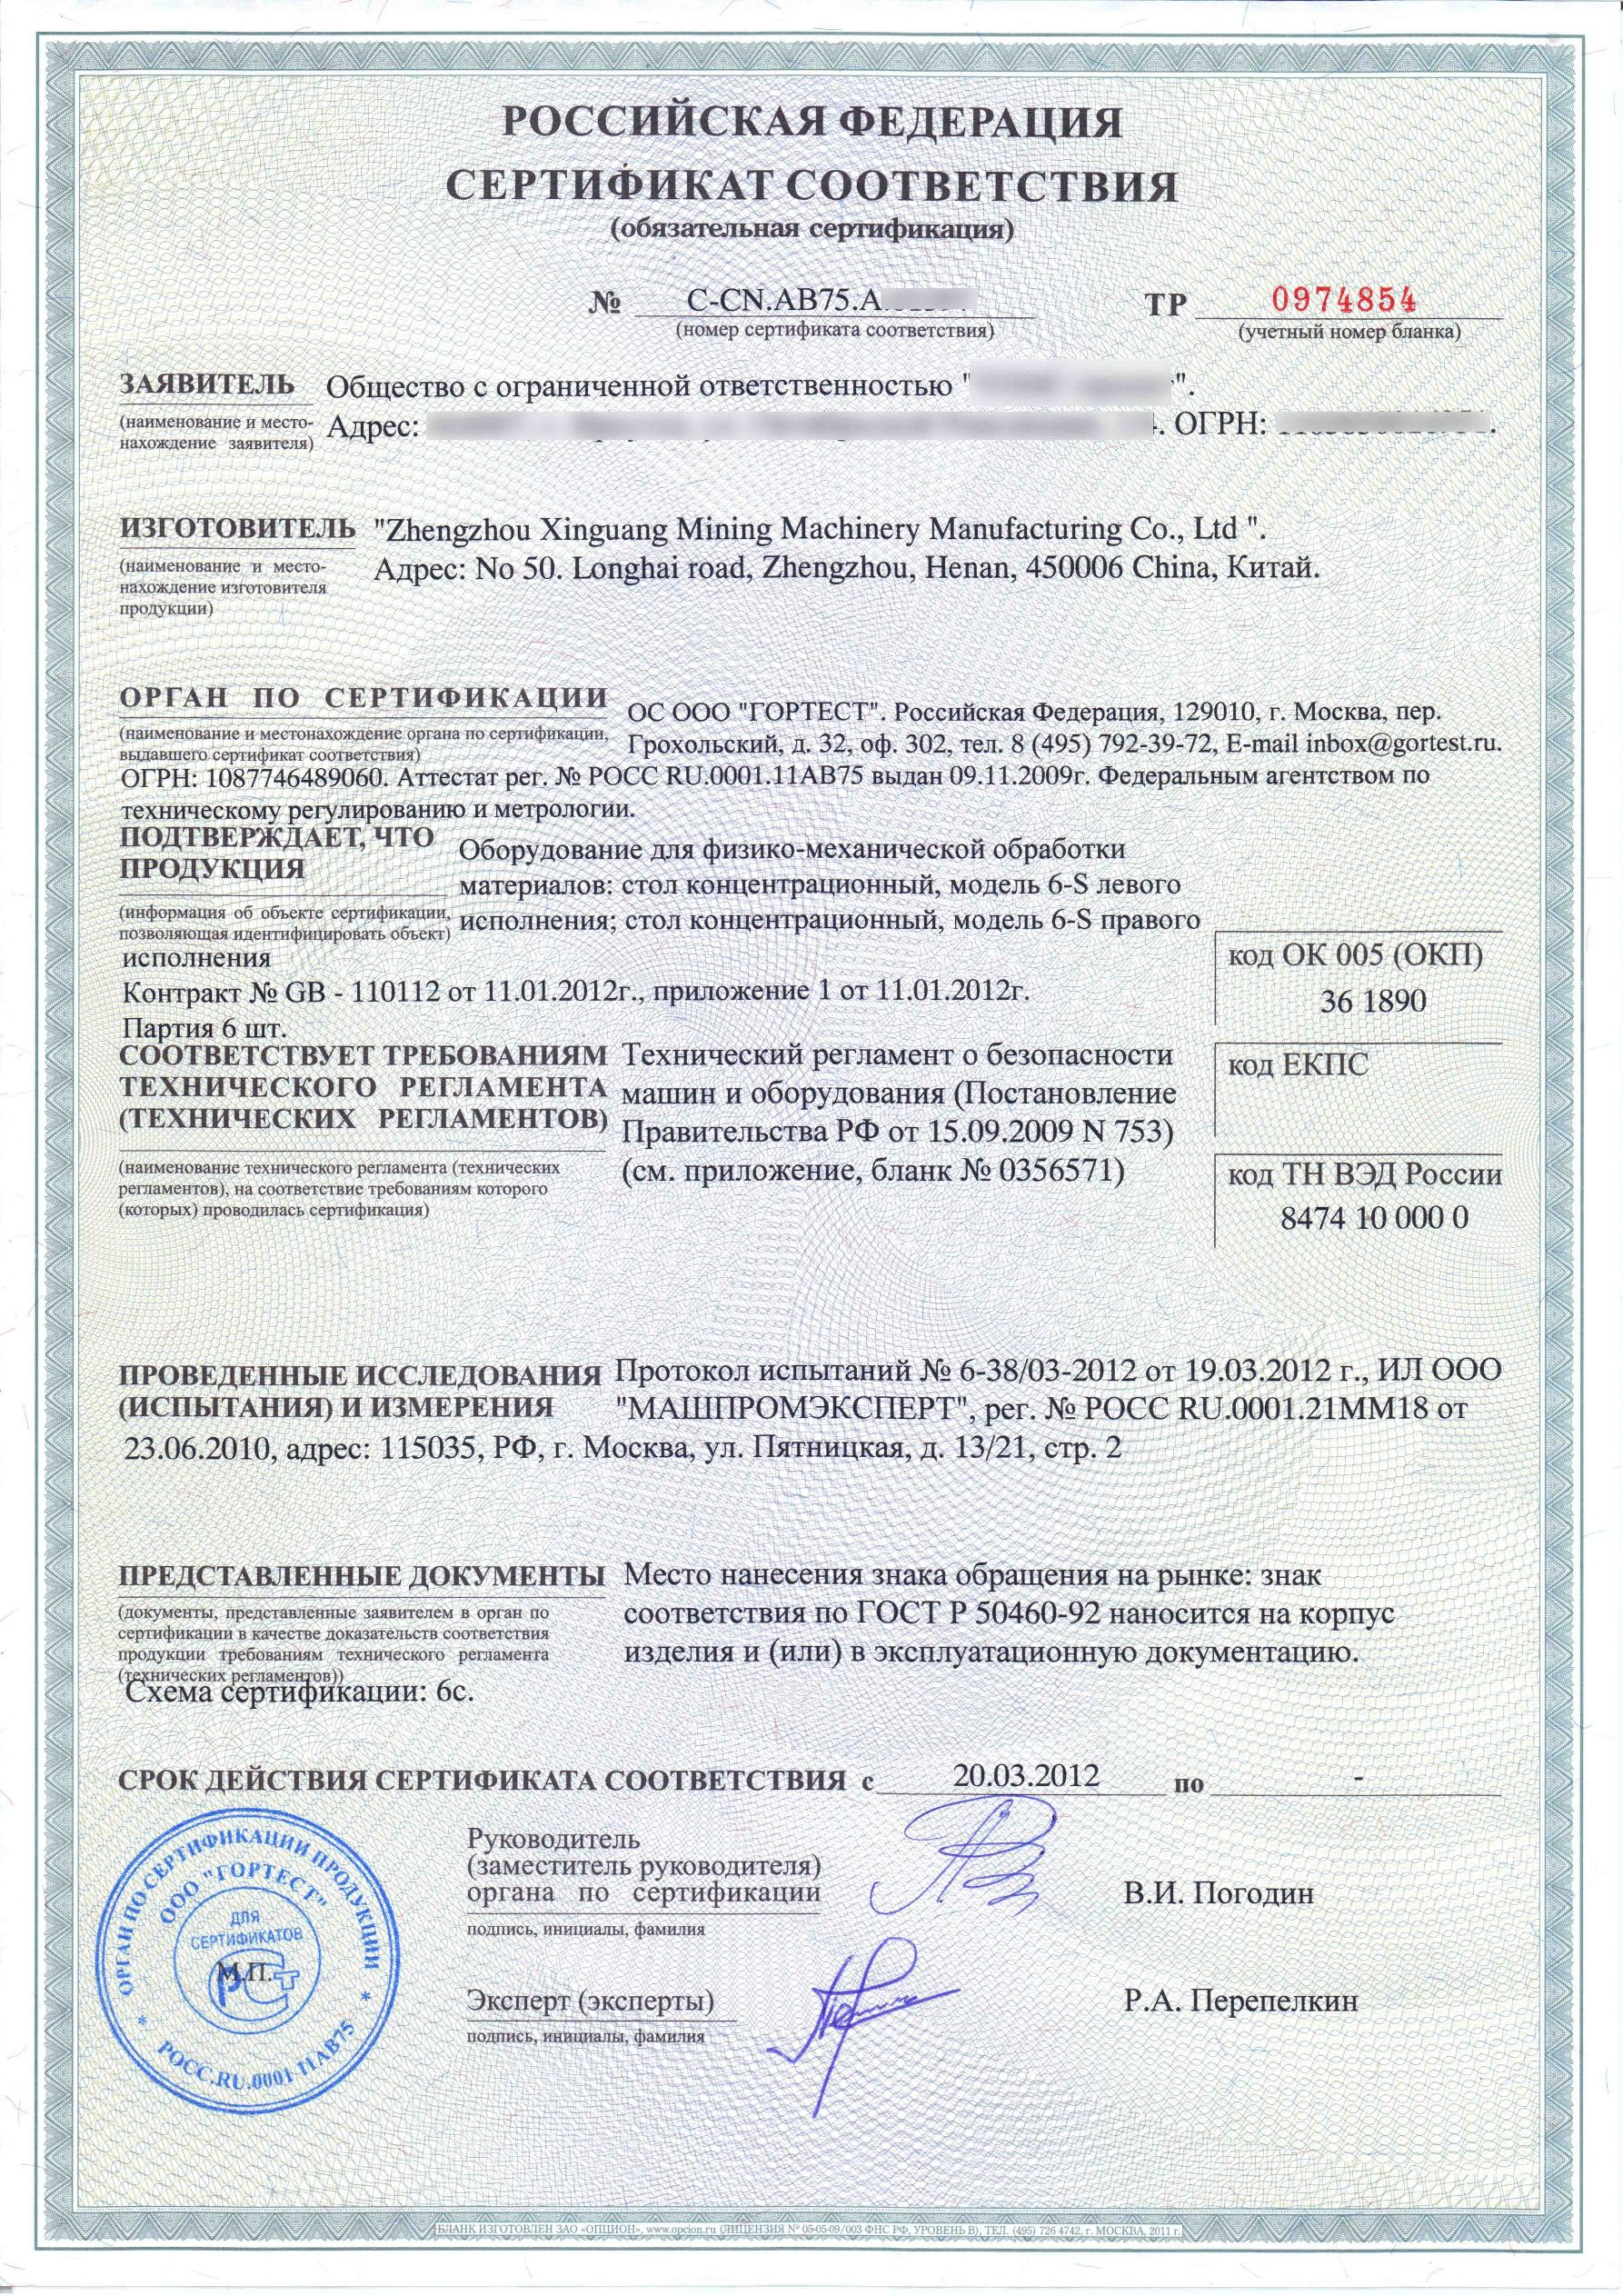 Declaration Of Coverage Car Insurance